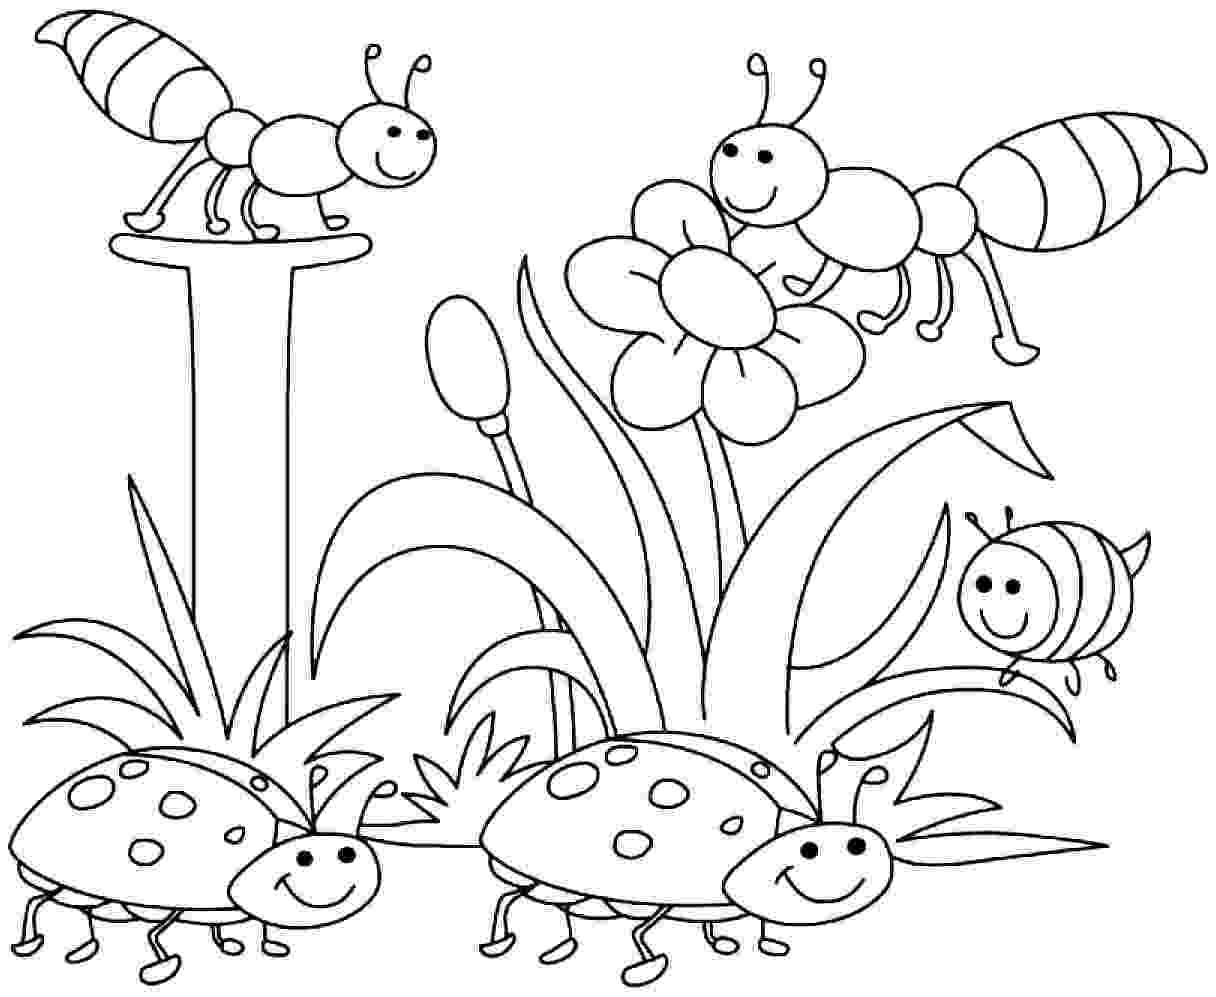 coloring sheets for older students educational graffiti coloring page for older kids sheets students older for coloring